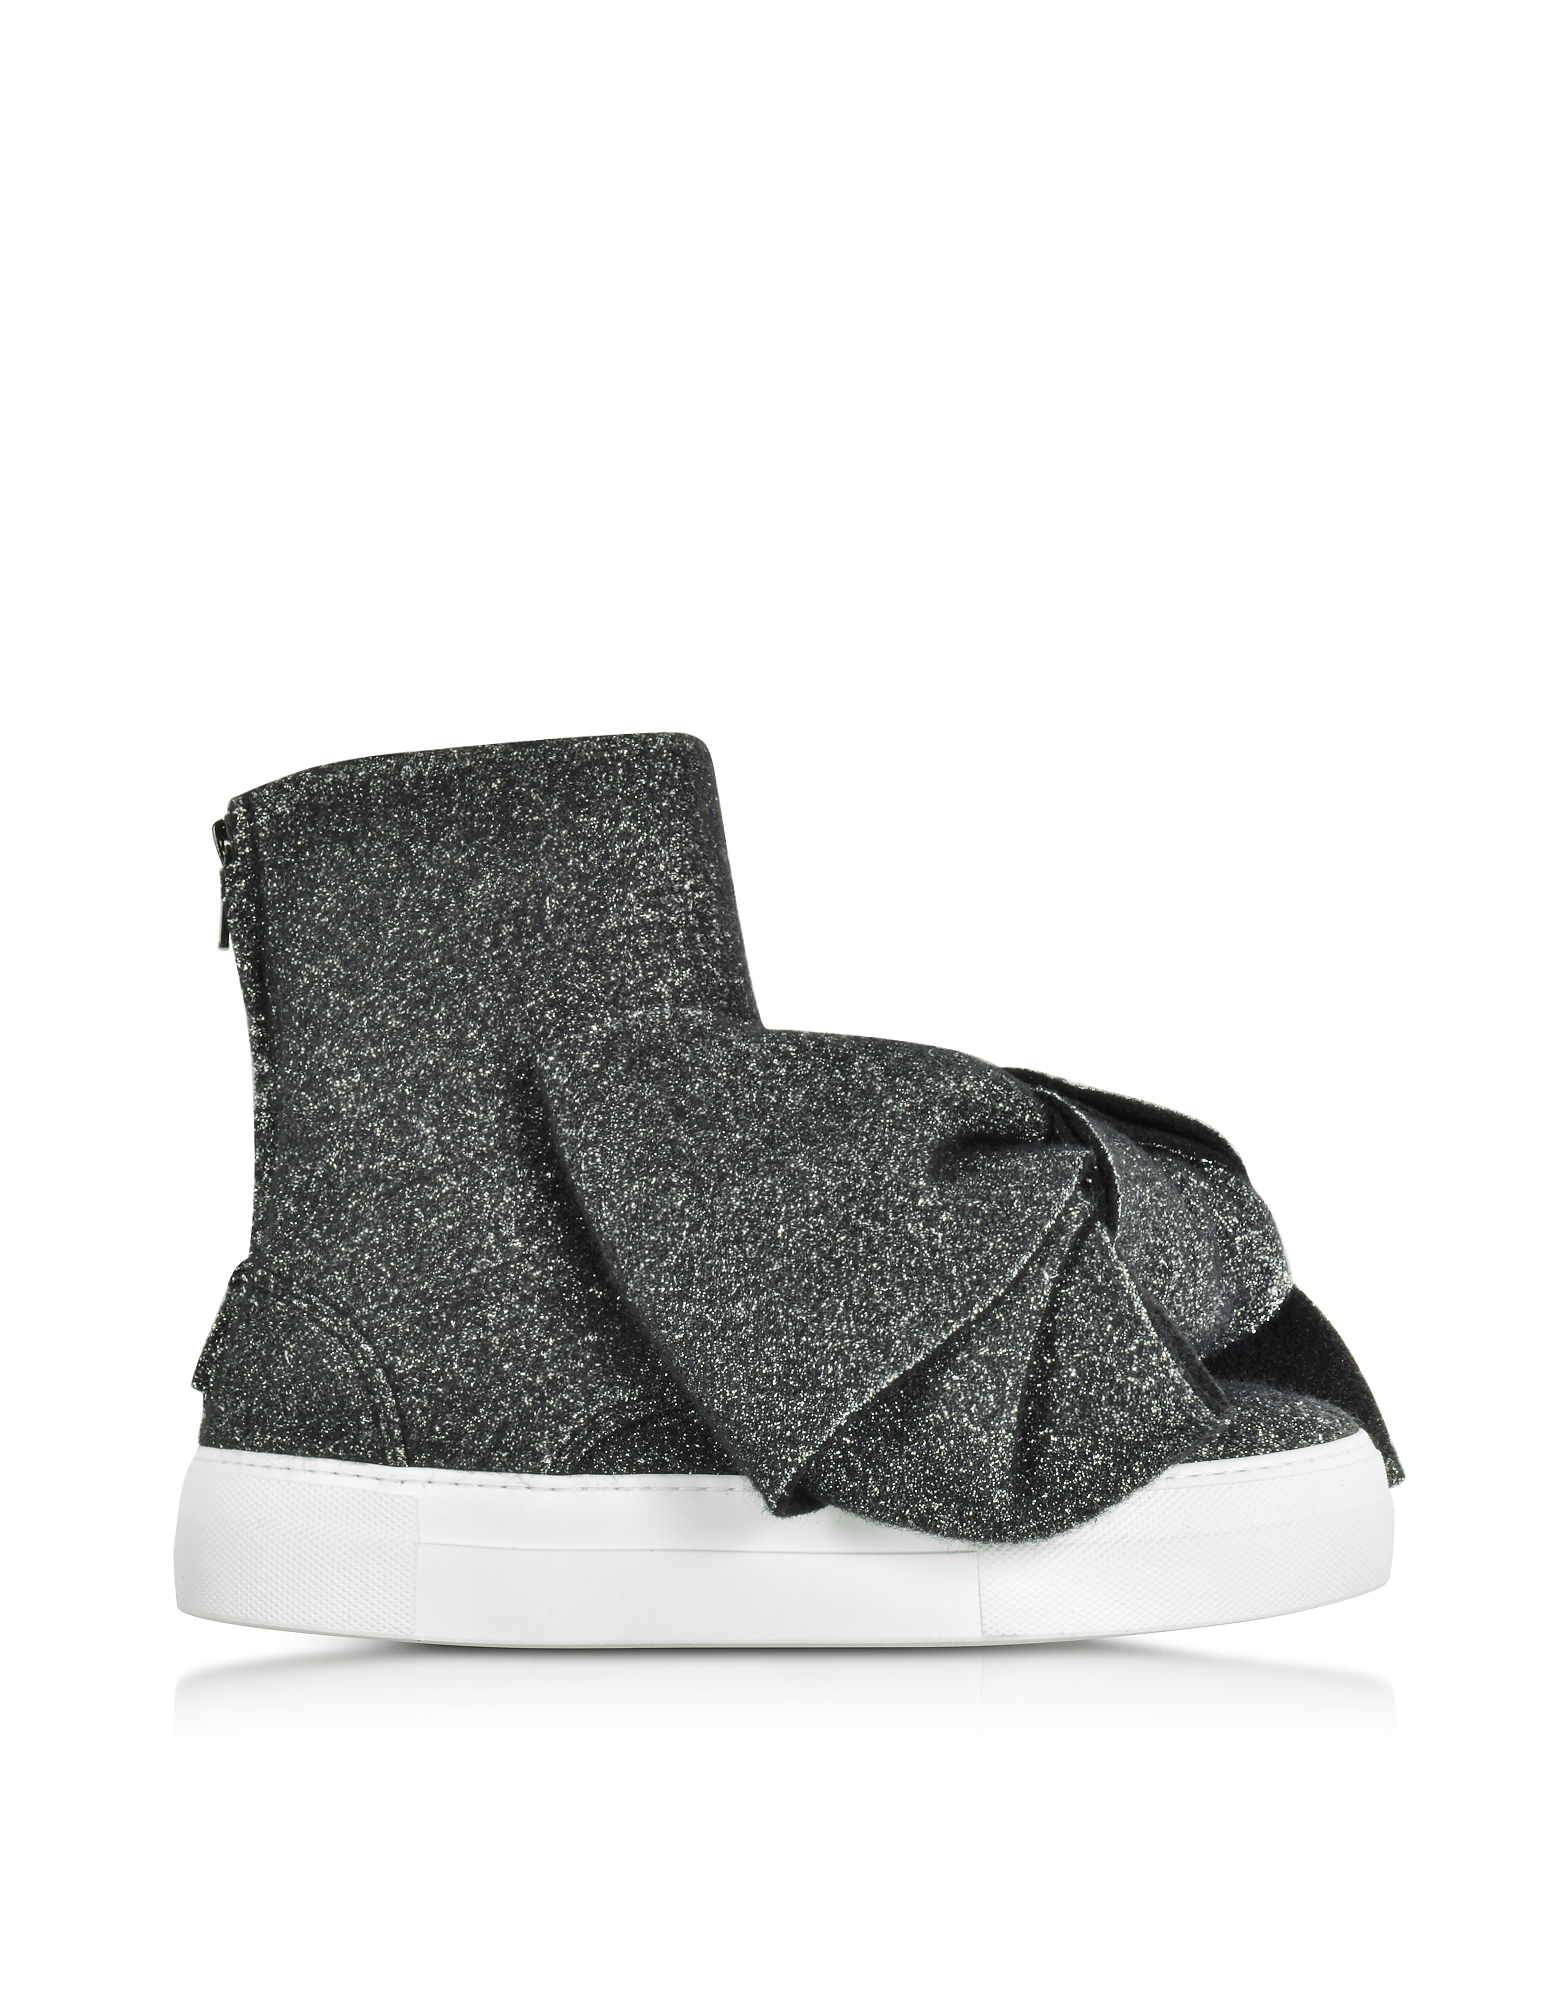 Joshua Sanders Shoes, Black Lurex Bow Slip on Sneakers